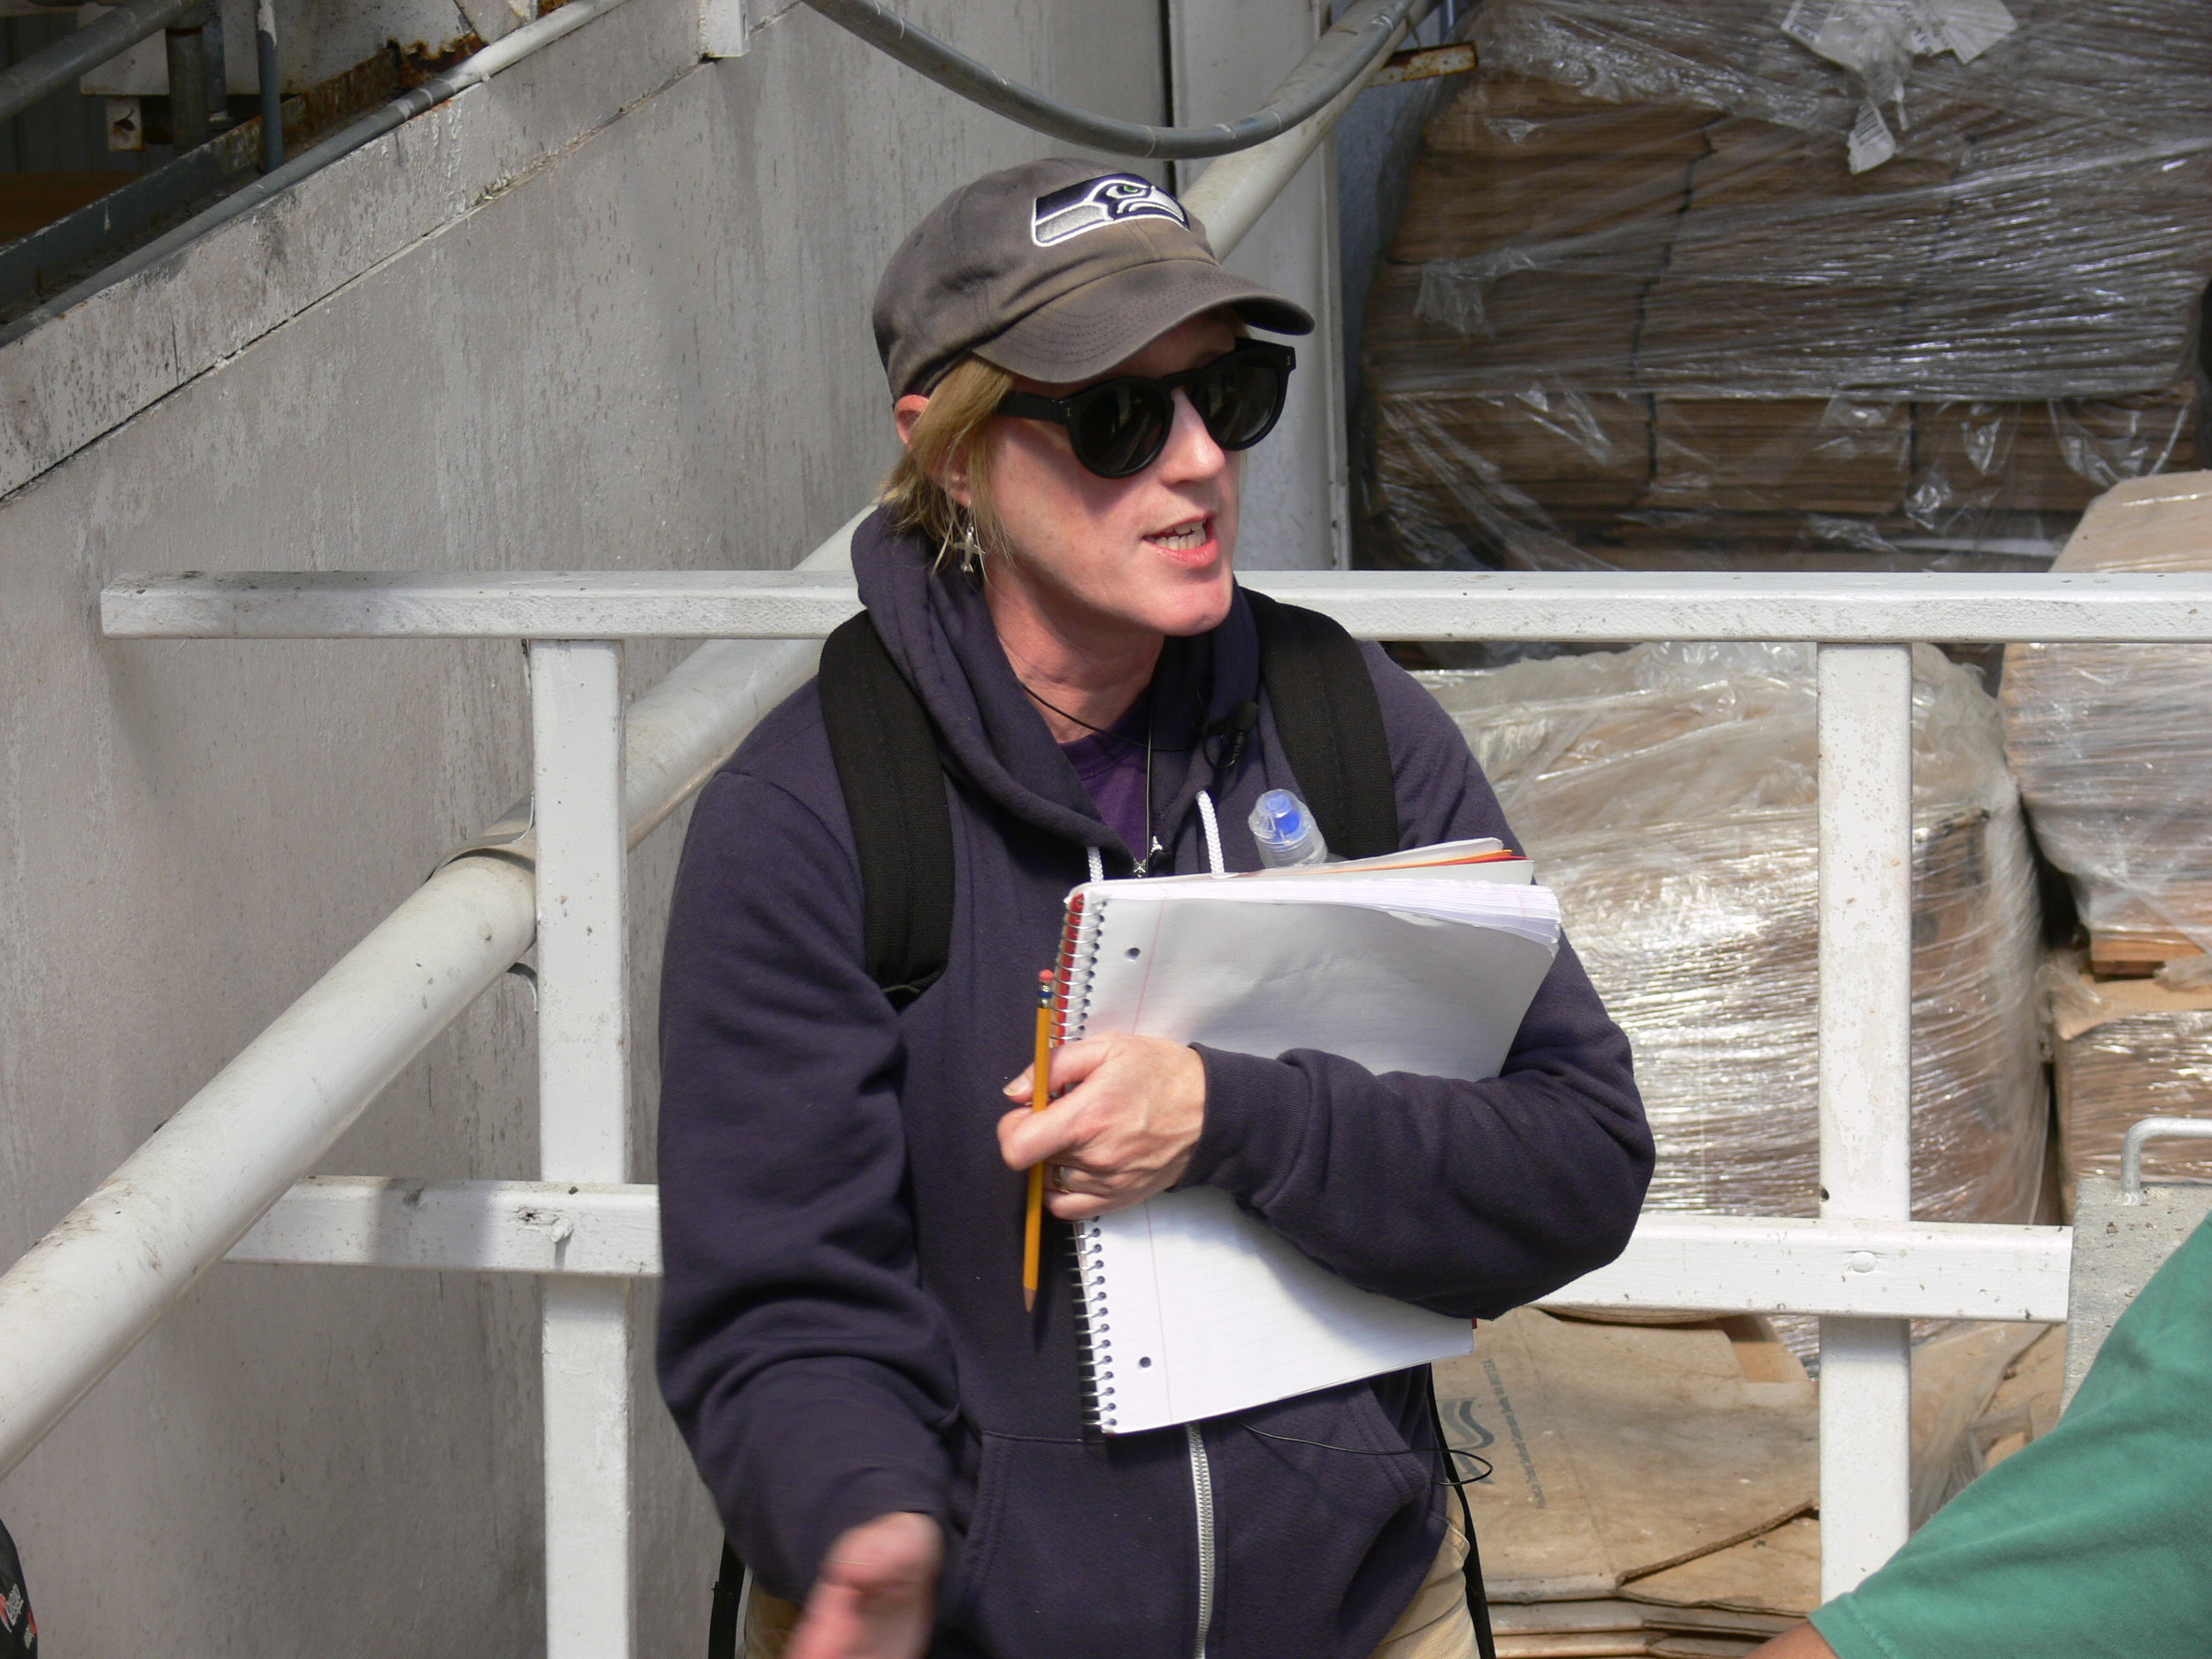 Project Director Katie Ringsmuth in the Fish House at the <NN> Cannery